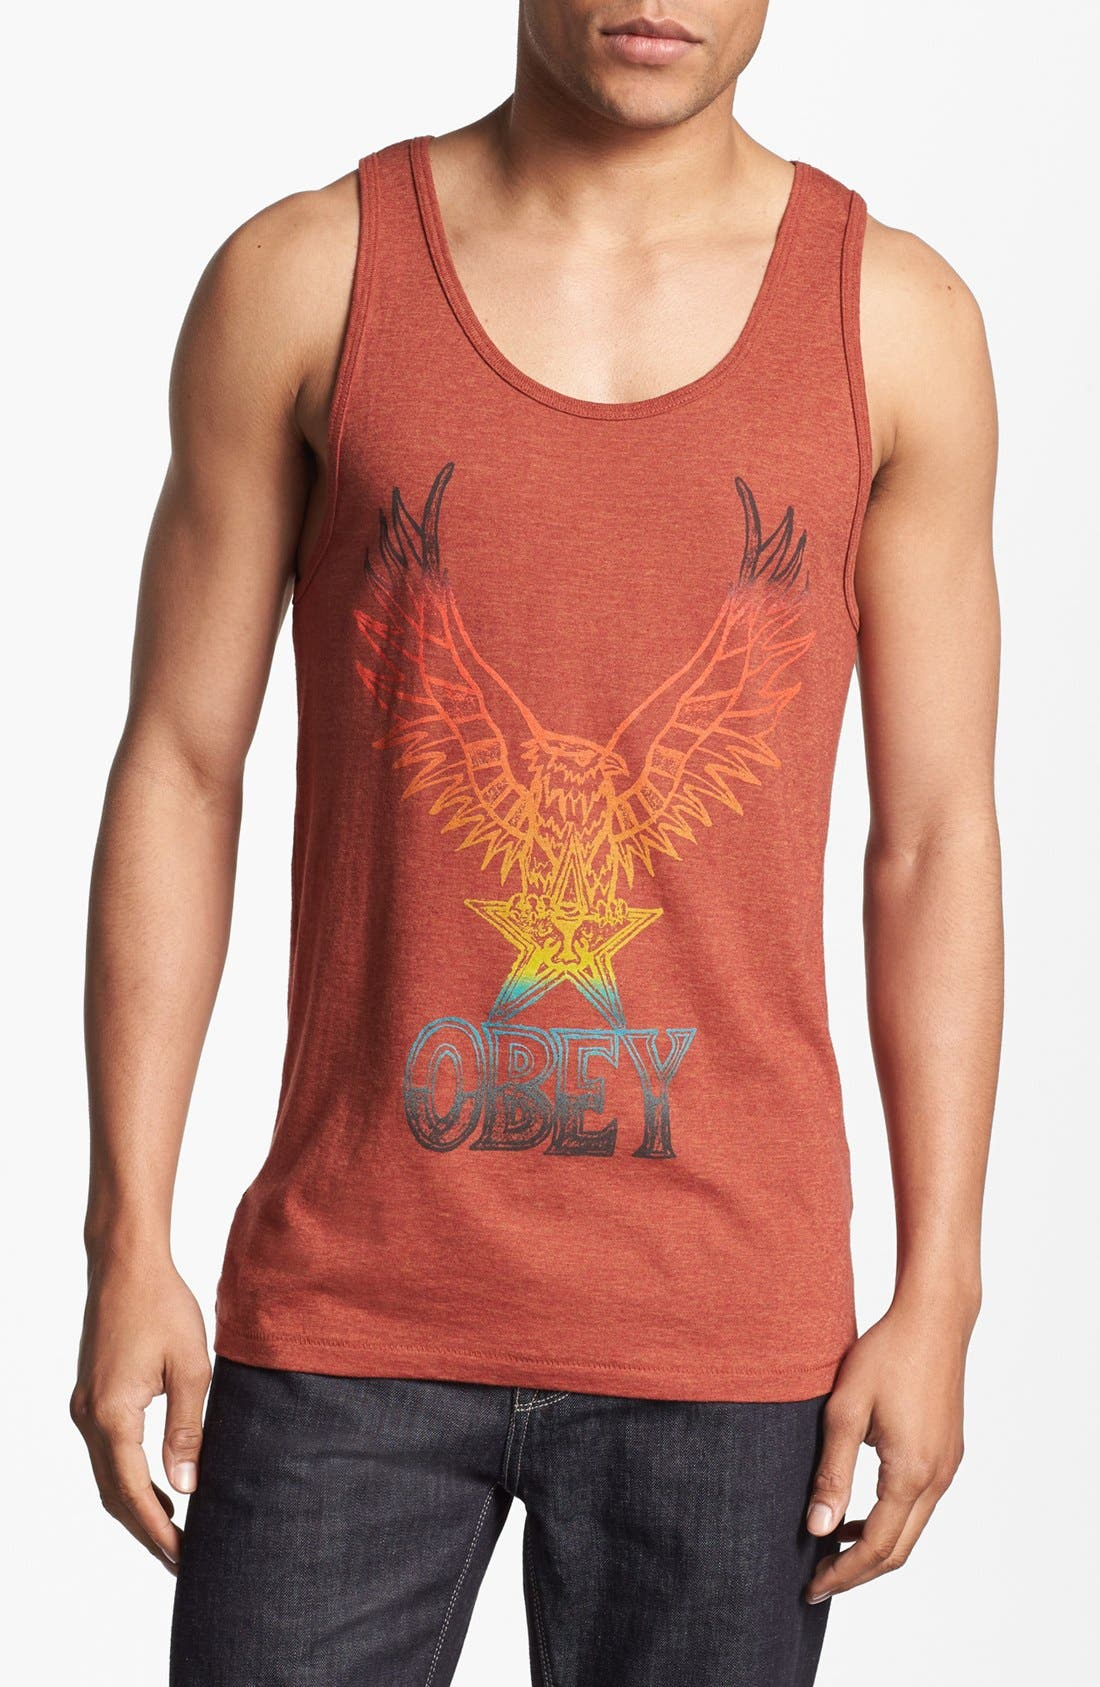 Main Image - Obey 'Take Flight' Graphic Tank Top